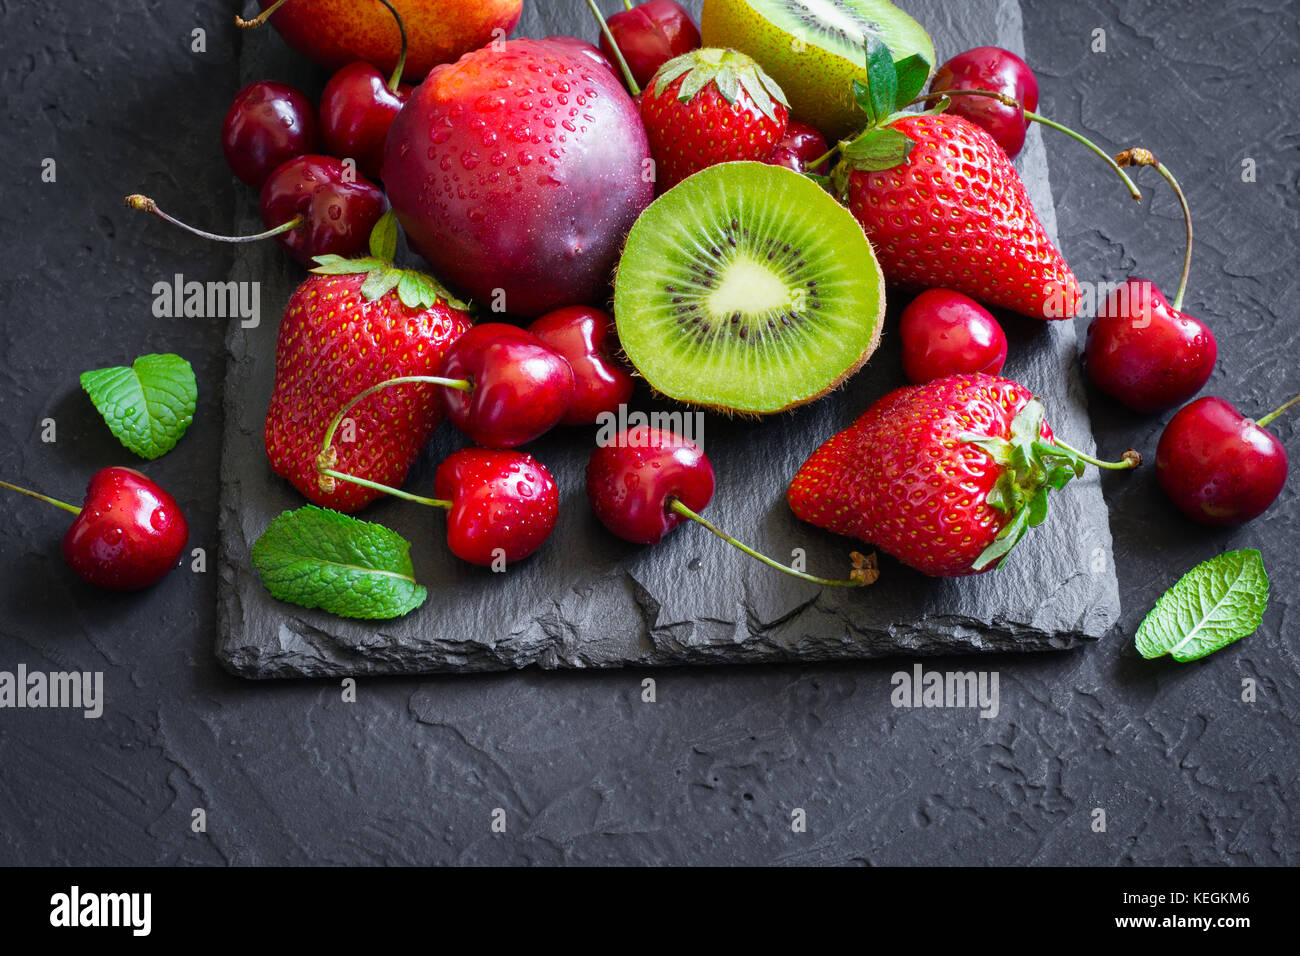 Assorted of Juicy summer fruits and berries. Strawberry, cherry, kiwi and peaches on black slate plate. - Stock Image